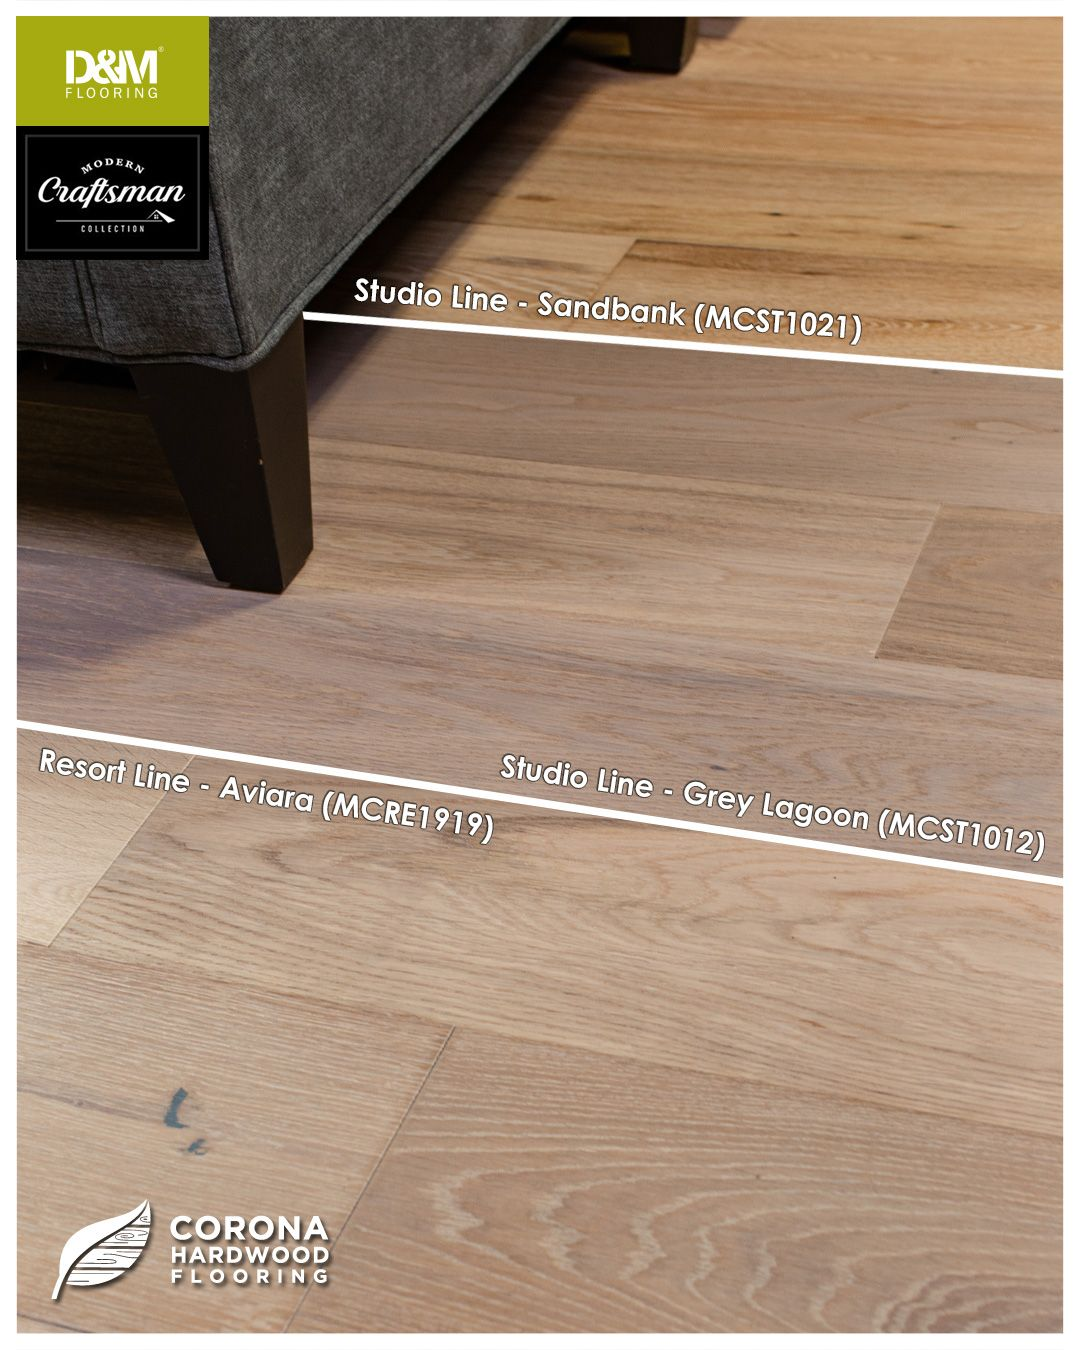 D M Unveiled Their Latest Engineered Hardwood Line And We Re Loving The Contemporary Looks And Naturals Along Wit In 2020 Modern Craftsman Engineered Hardwood Hardwood